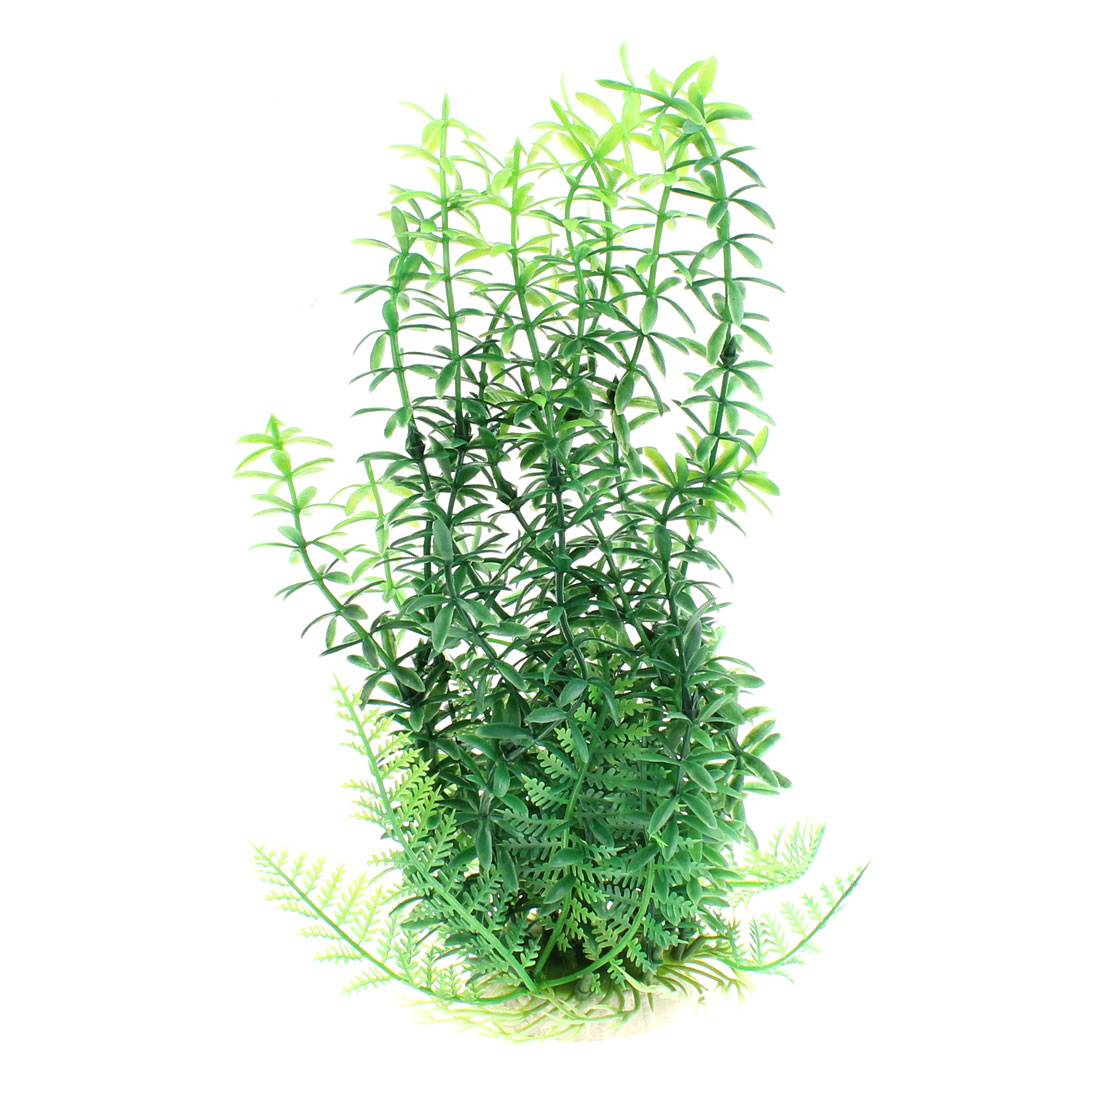 Aquarium Plastic Artificial Underwater Plant Grass Ornament 22cm High